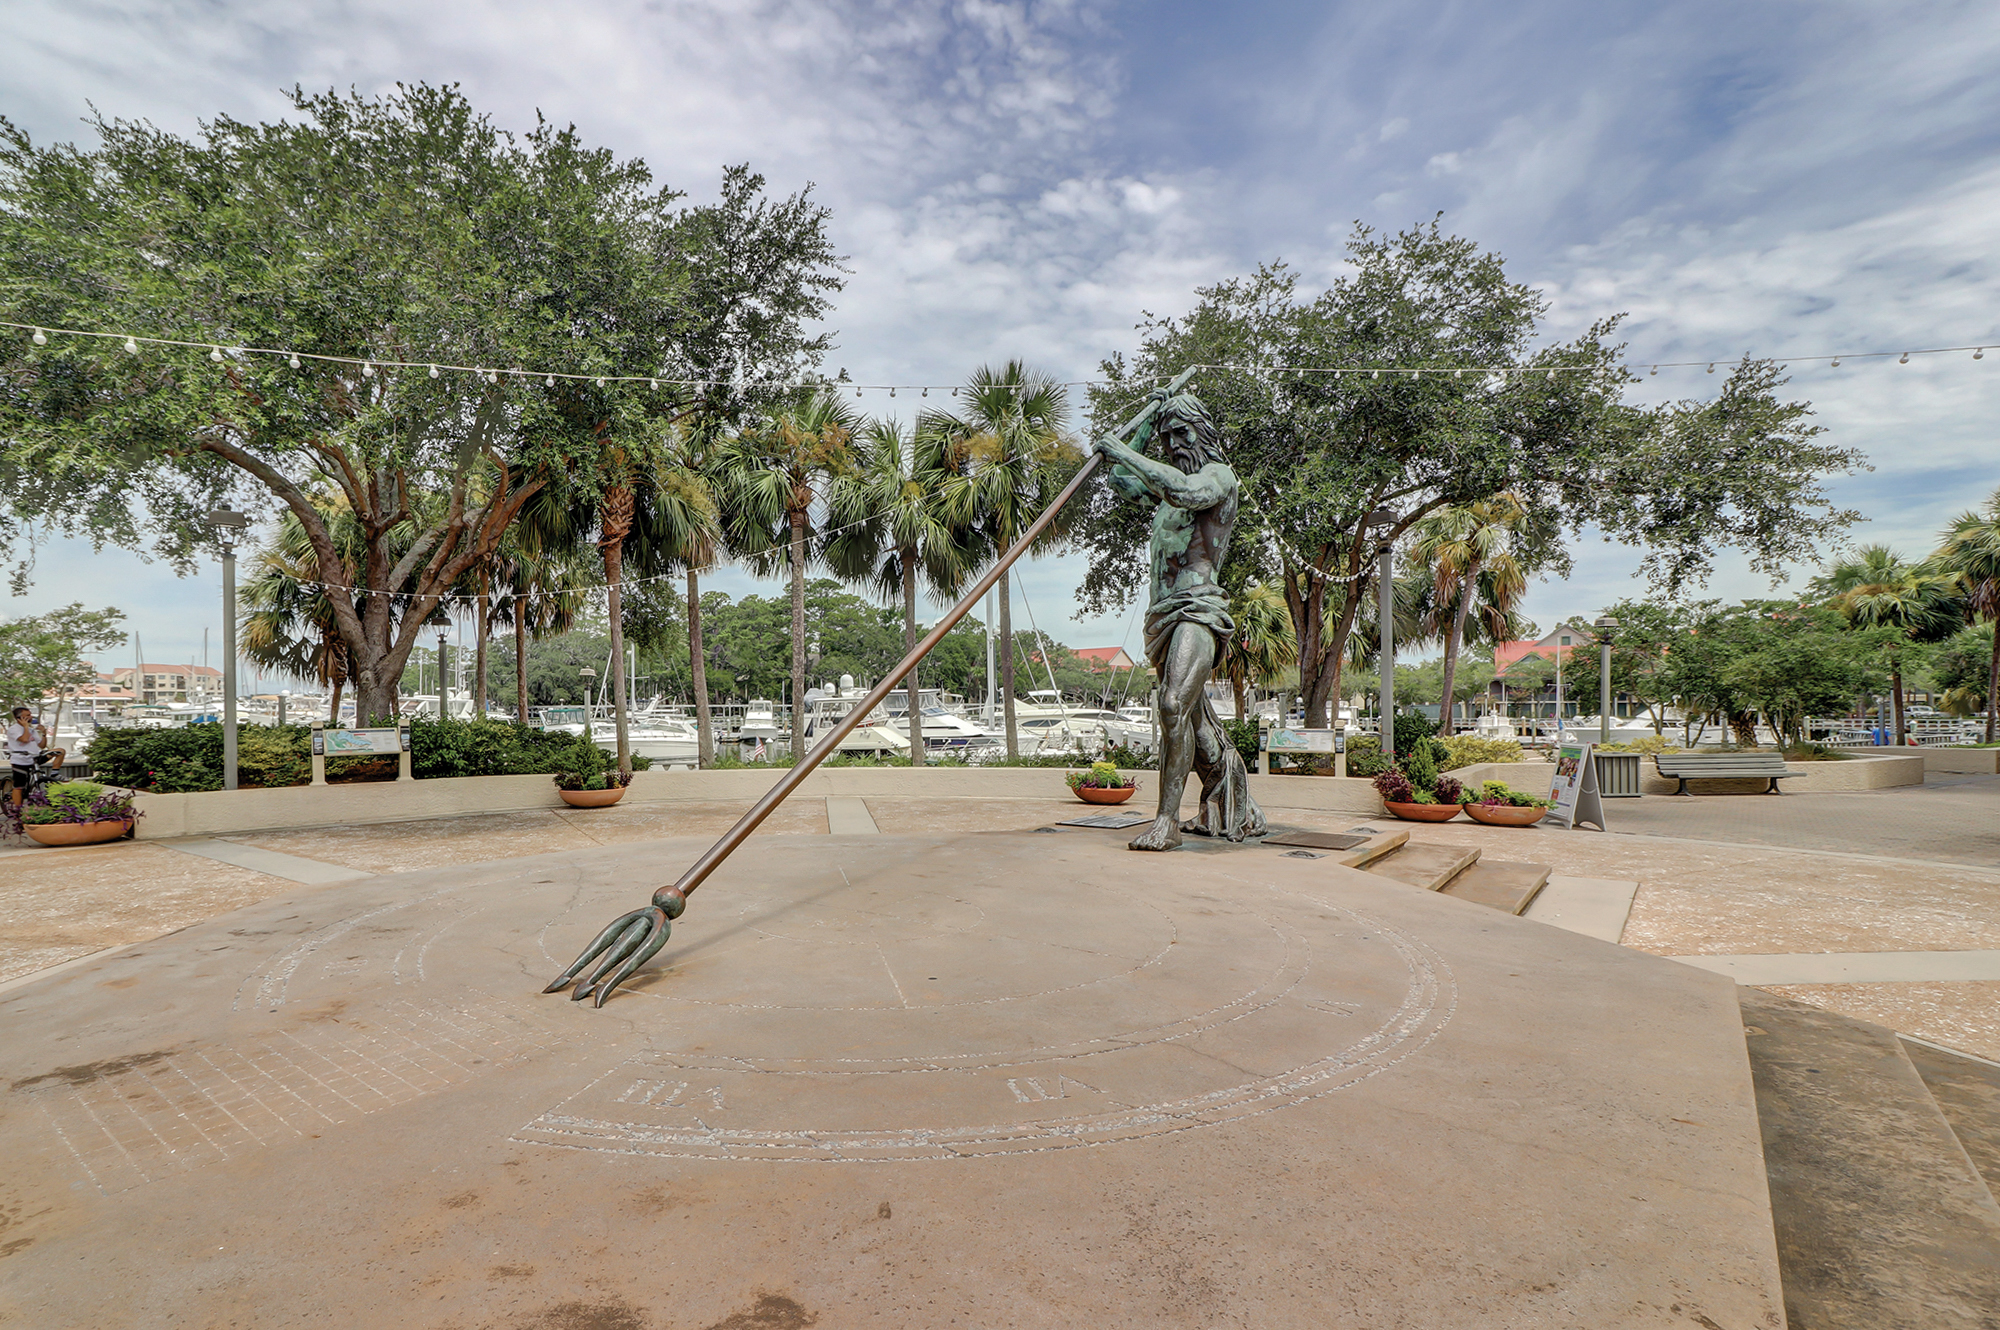 King Neptune Statue in Shelter Cove, Palmetto Dunes